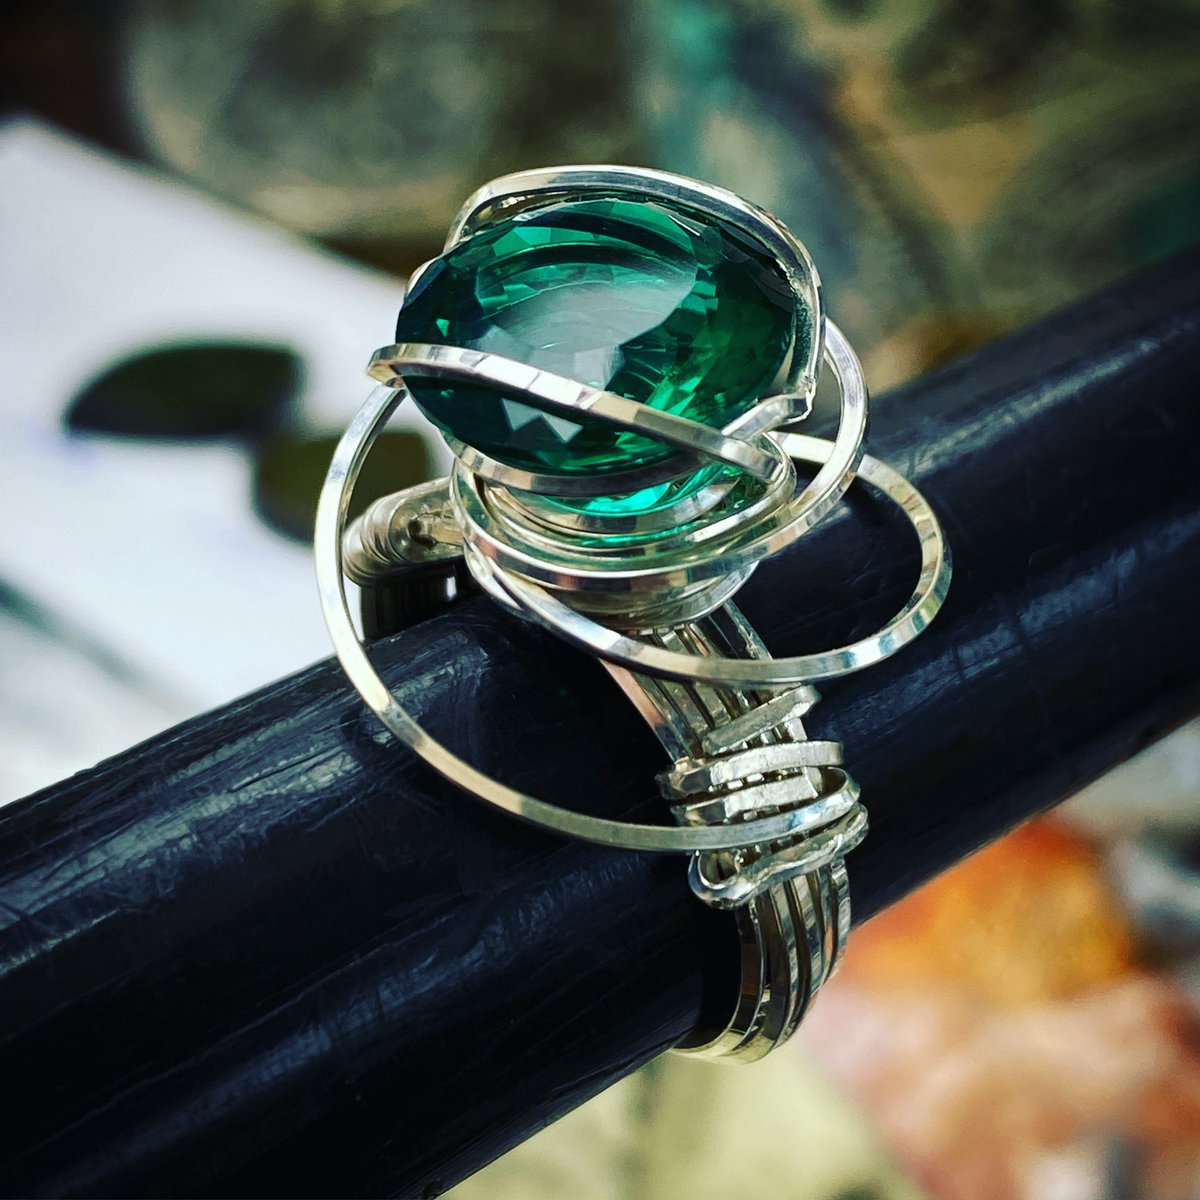 Beautiful New Rose Ring for a client. 9 carat Emerald Obsidianite from Mt. St. Helens set in Sterling Silver. #beautiful #original #jewelry #handmade #in #lagunabeach #art #is #life #May #gem #go #green #glam #fashion #makeastatement #grateful #art #is #life https://t.co/qgRIAwX984